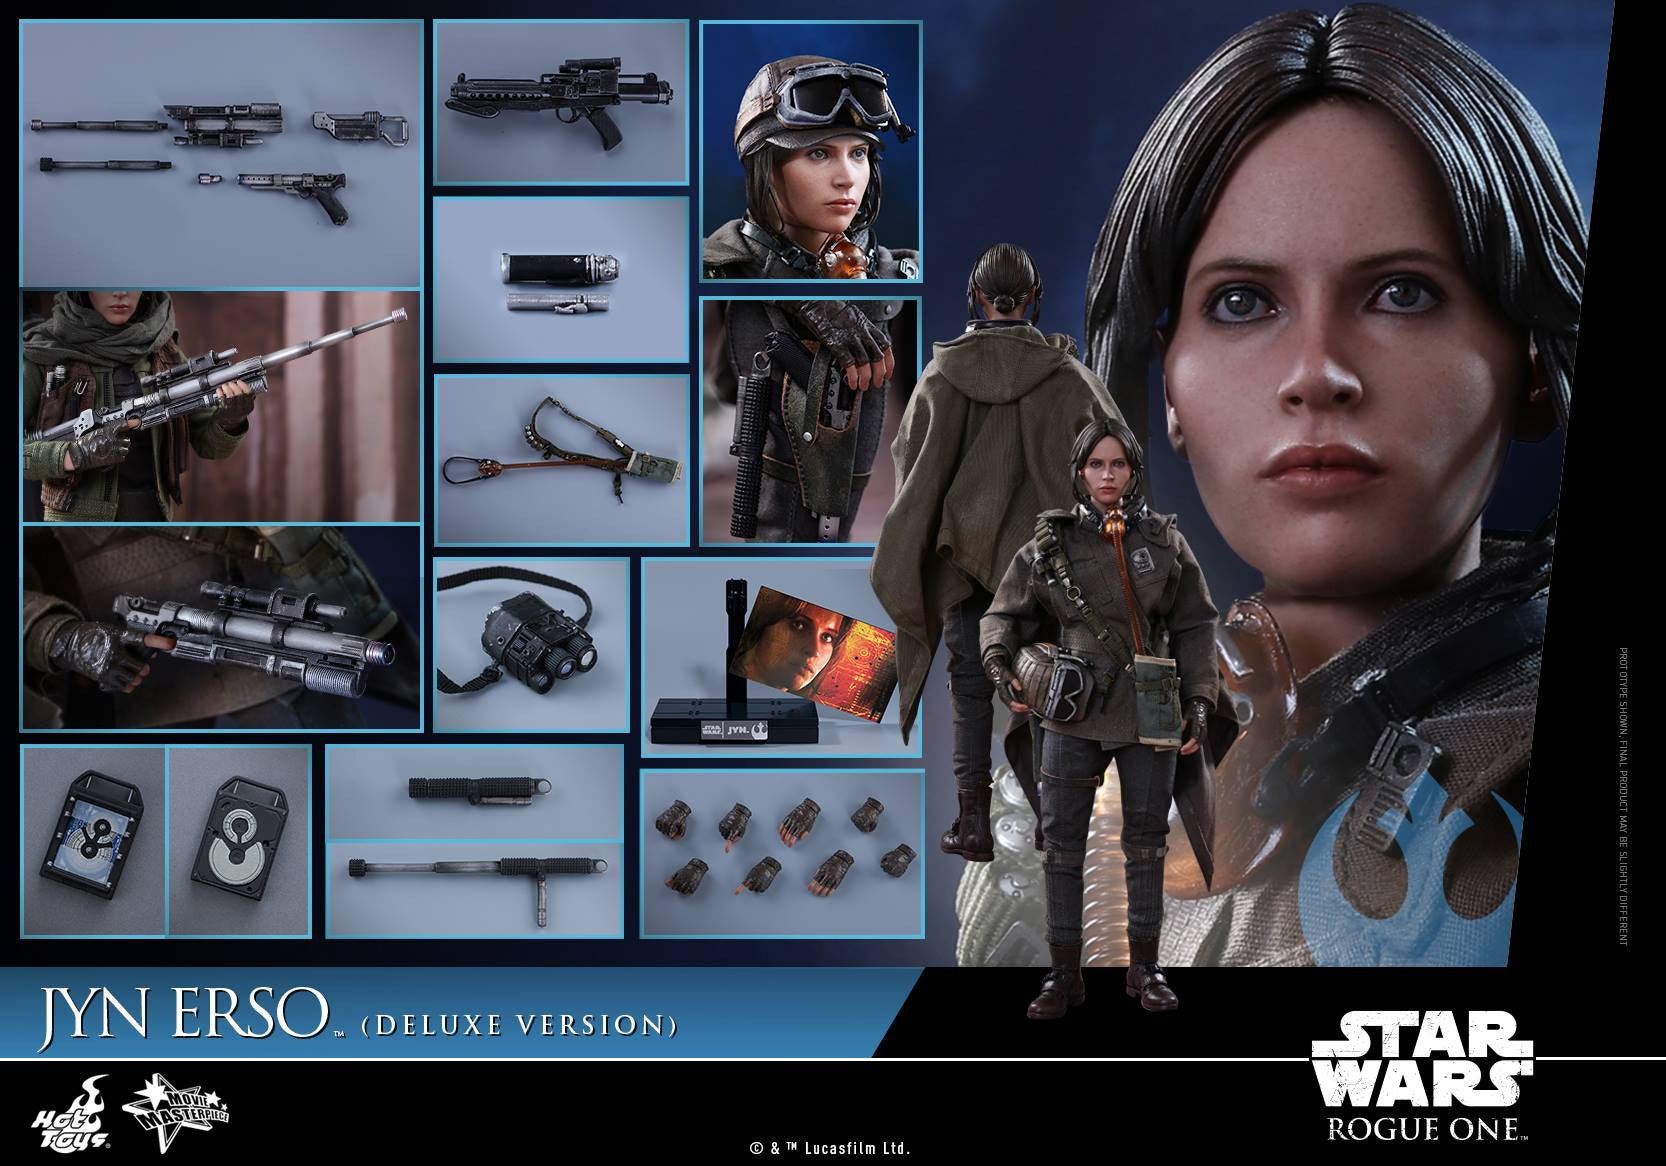 Hot Toys - MMS405 - Rogue One - A Star Wars Story - Jyn Erso (Deluxe Version) - Marvelous Toys - 14